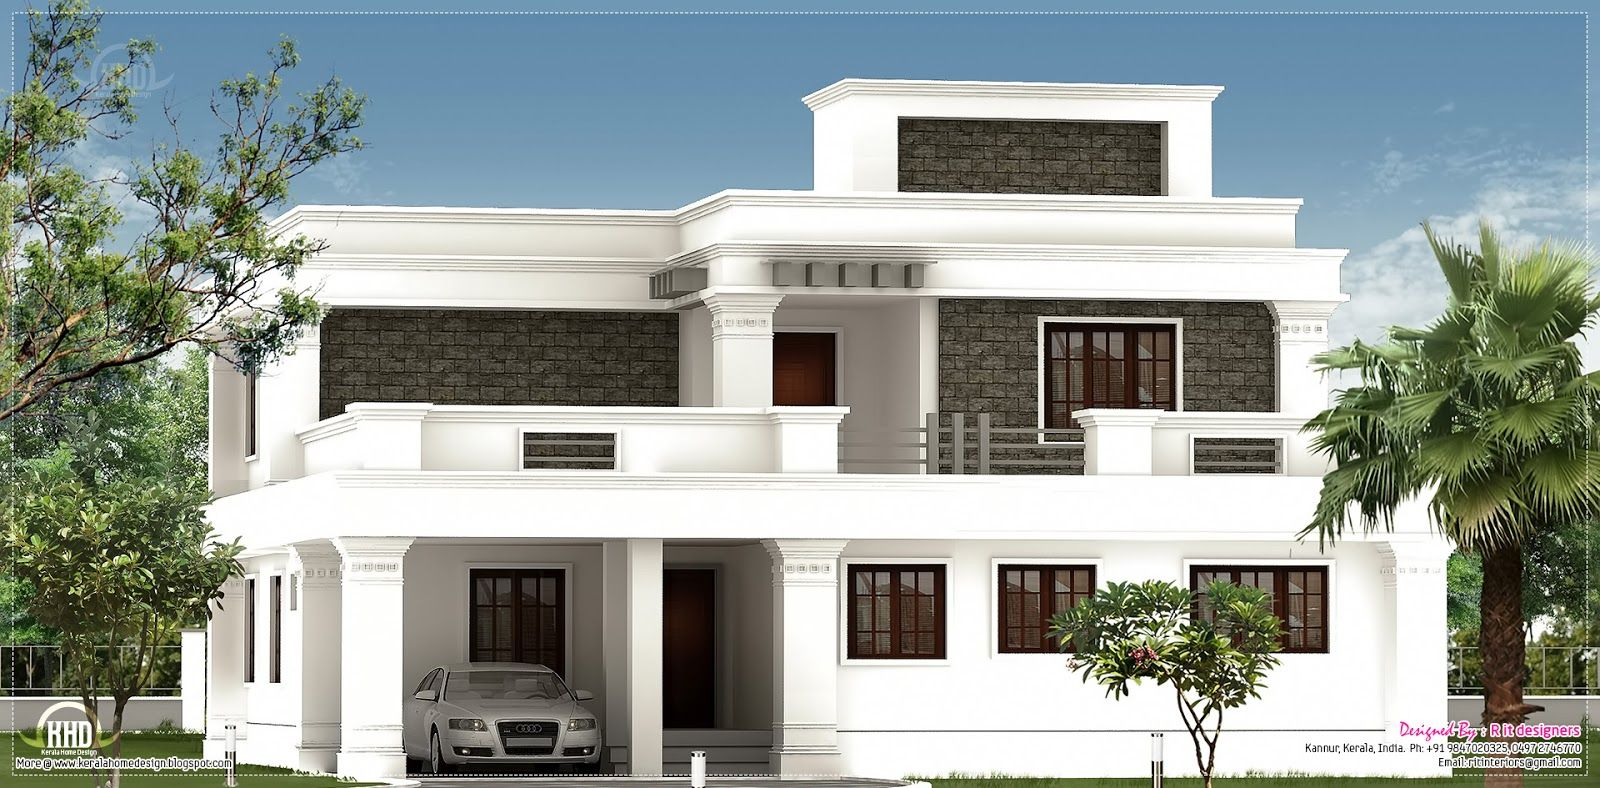 Flat roof homes designs flat roof villa exterior in 2400 for Villa ideas designs